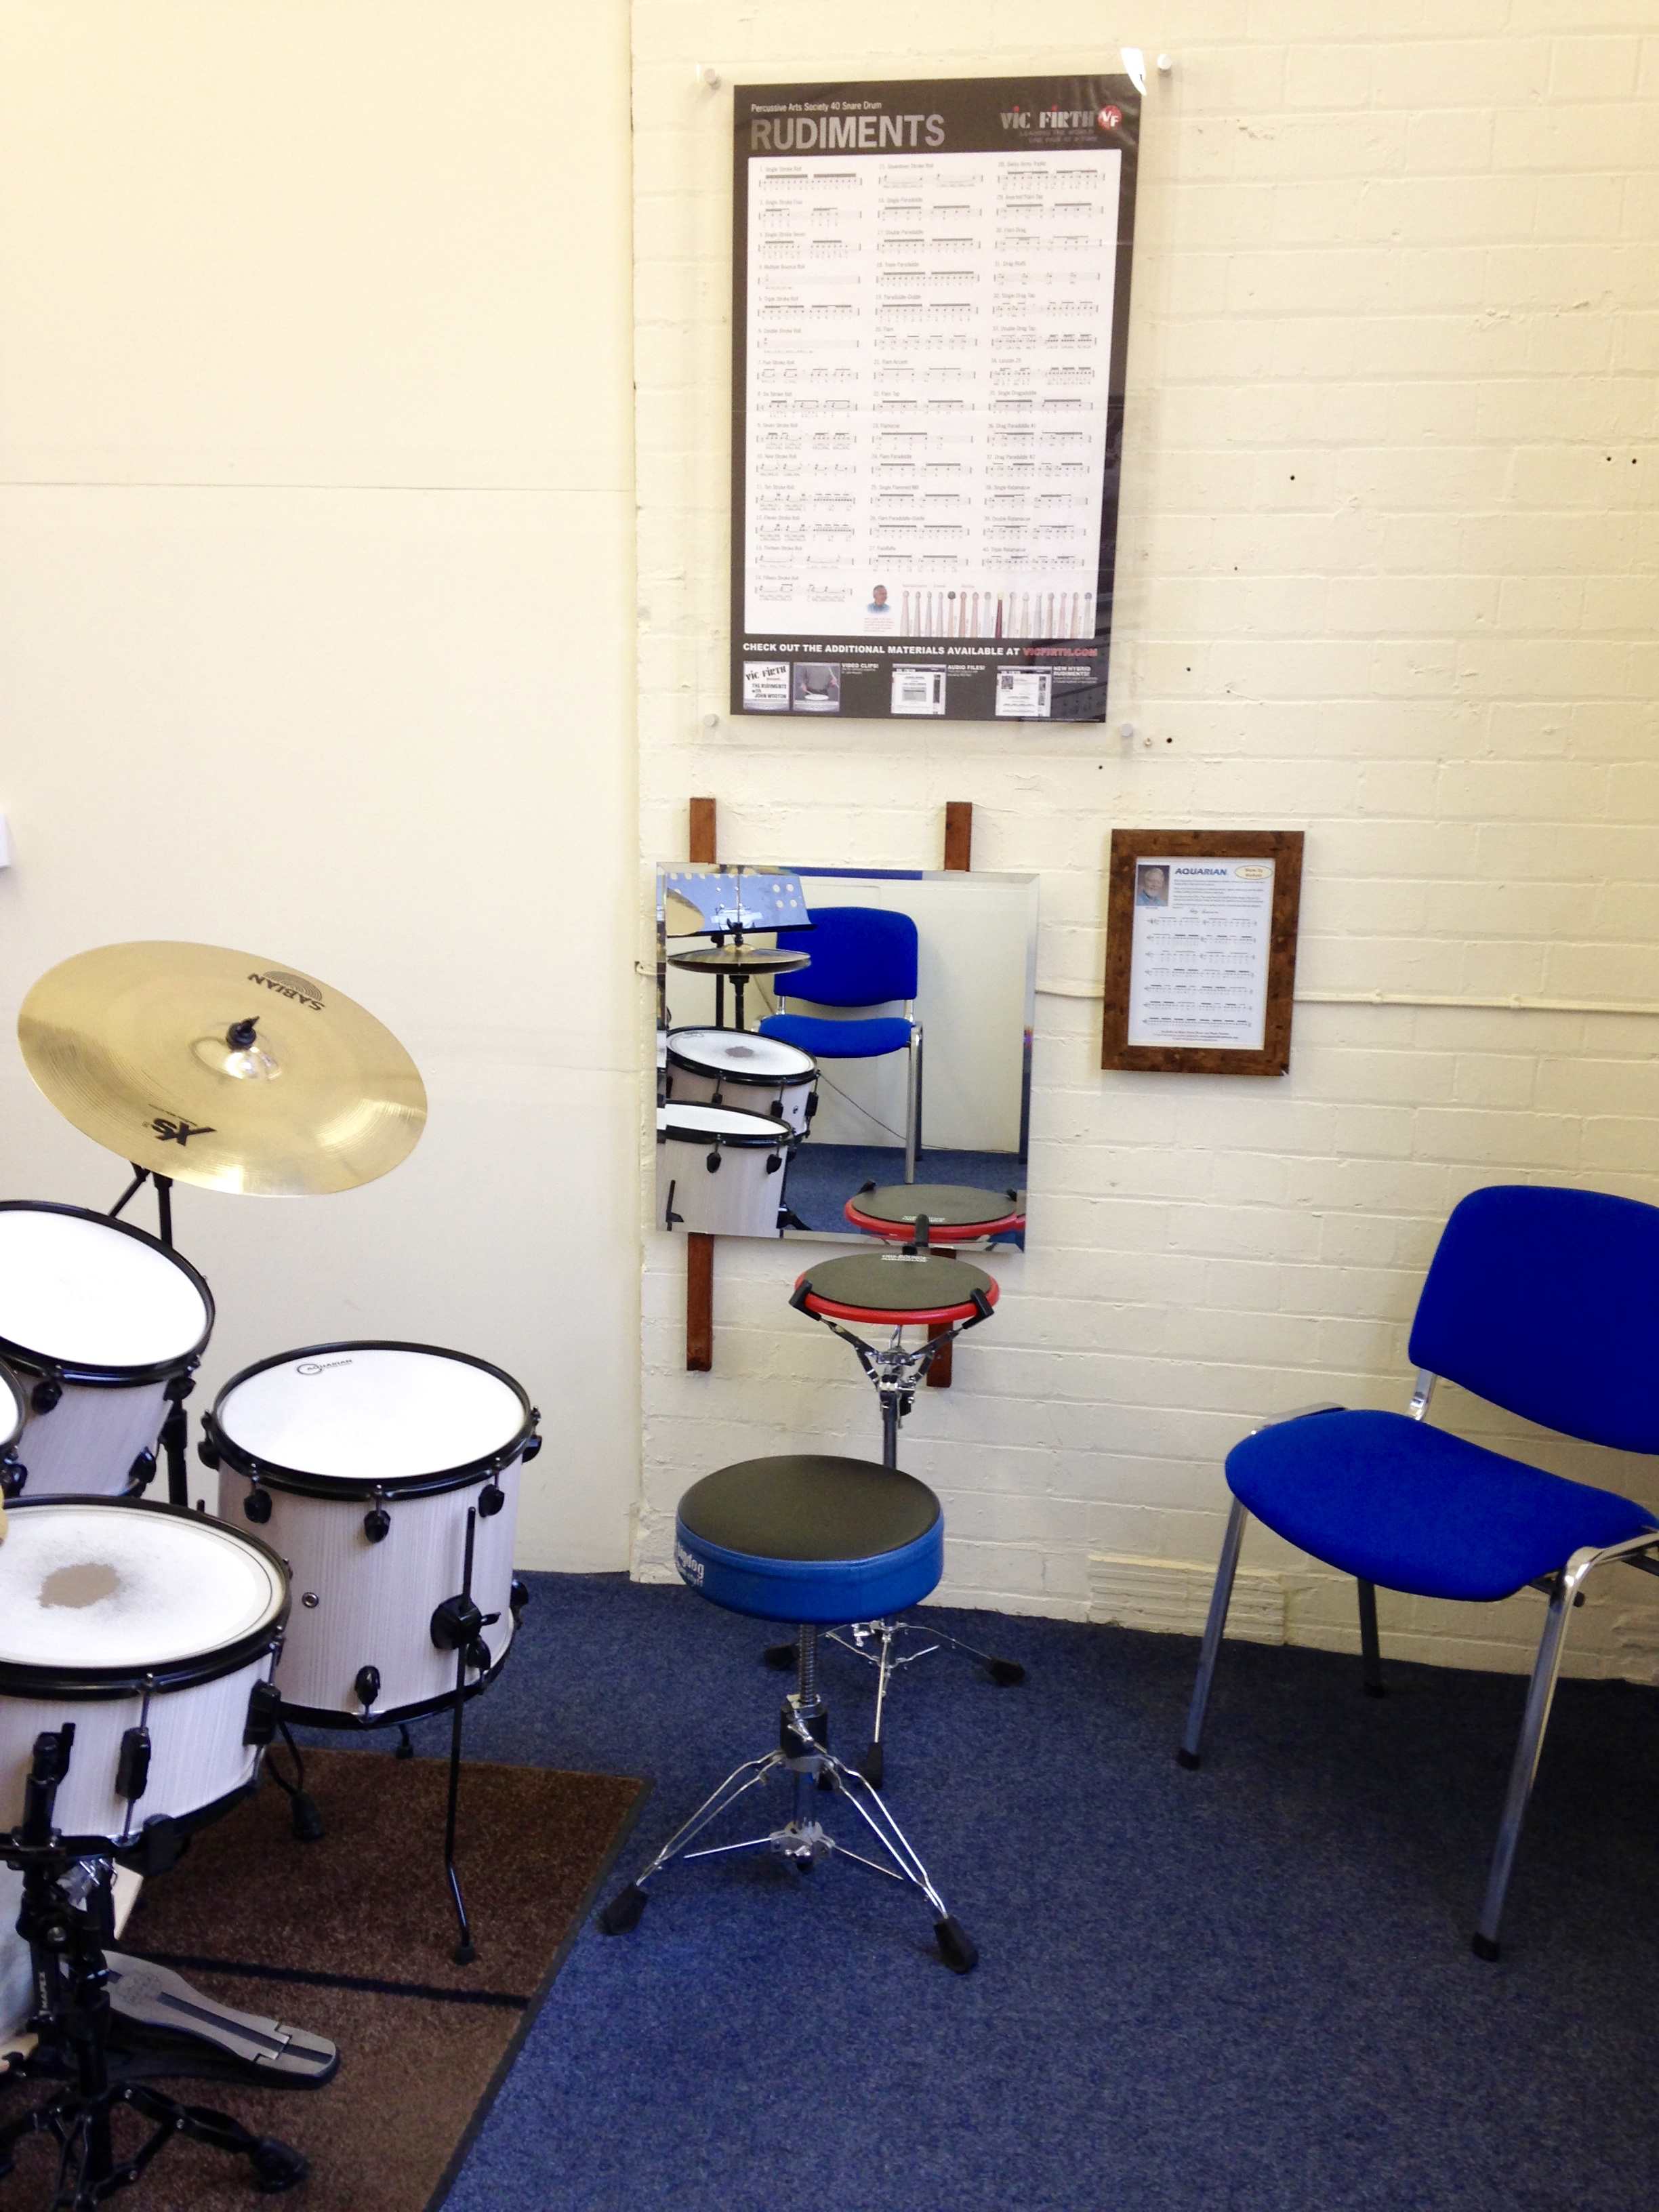 Aquarian practice pad, wall-mounted mirror and drum rudiment chart set up in Studio 1.